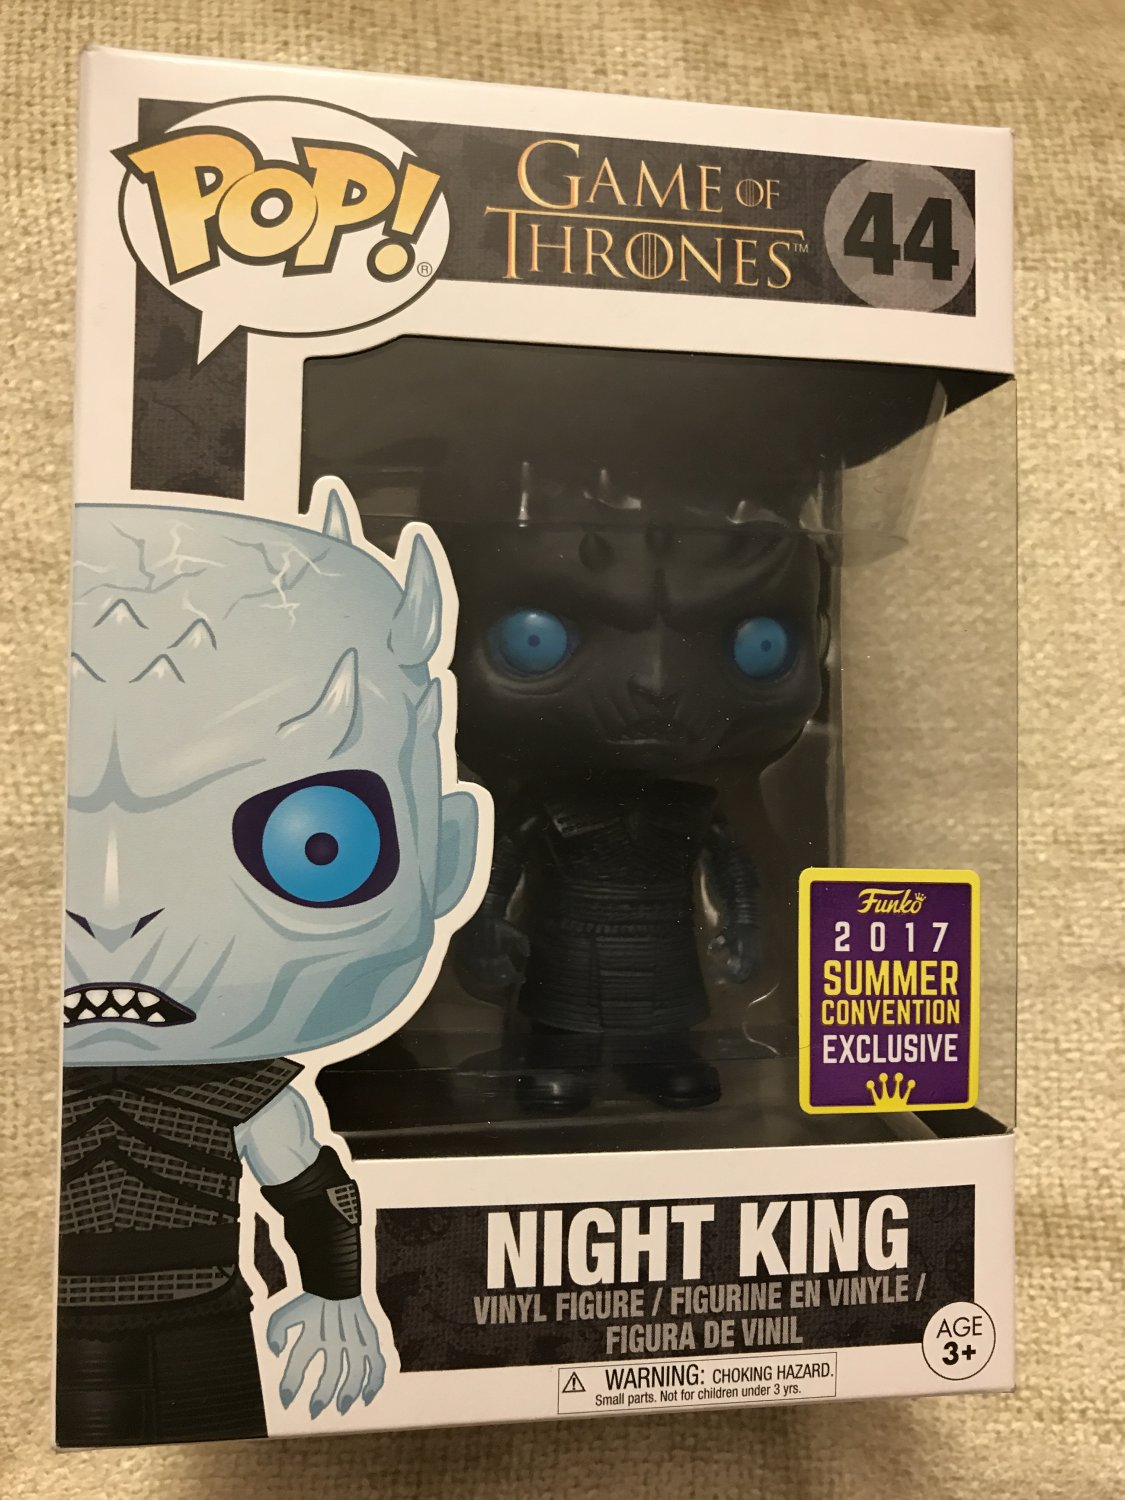 SDCC 2017 Funko Pop Night King Game of Thrones Exclusive